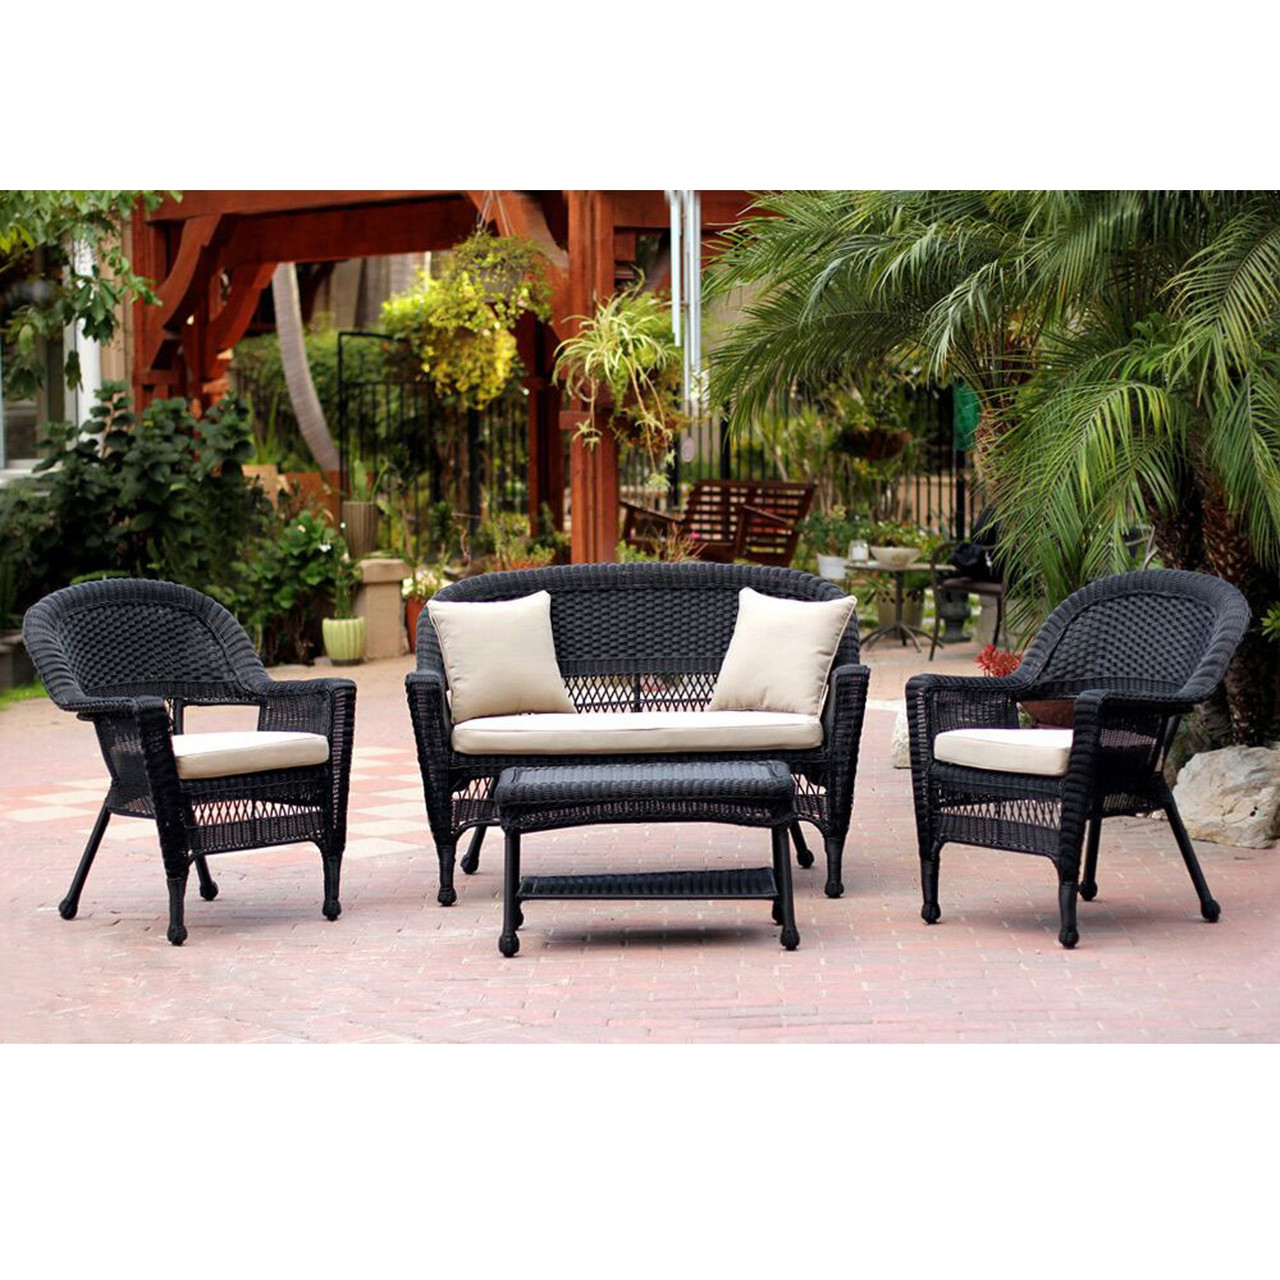 4 piece black wicker patio chair loveseat table furniture set rh christmascentral com black wicker patio furniture target black wicker sectional patio furniture